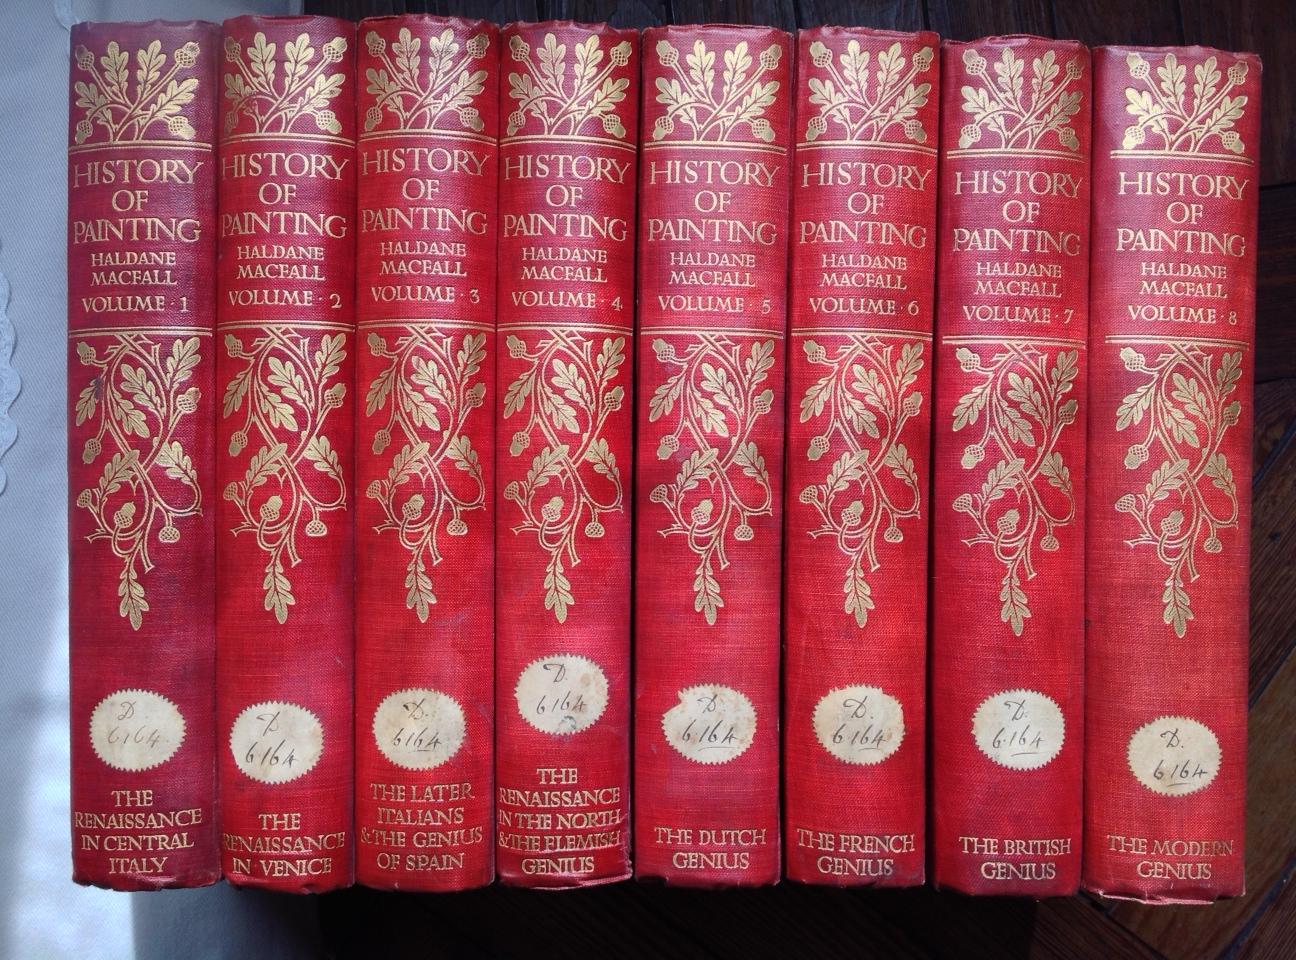 A History Of Painting 8 Volumes Complets London Edinburgh T C And E Jack 1911 1ere Edition 215 X 29 Huit In 4 Reliure Pleine Toile